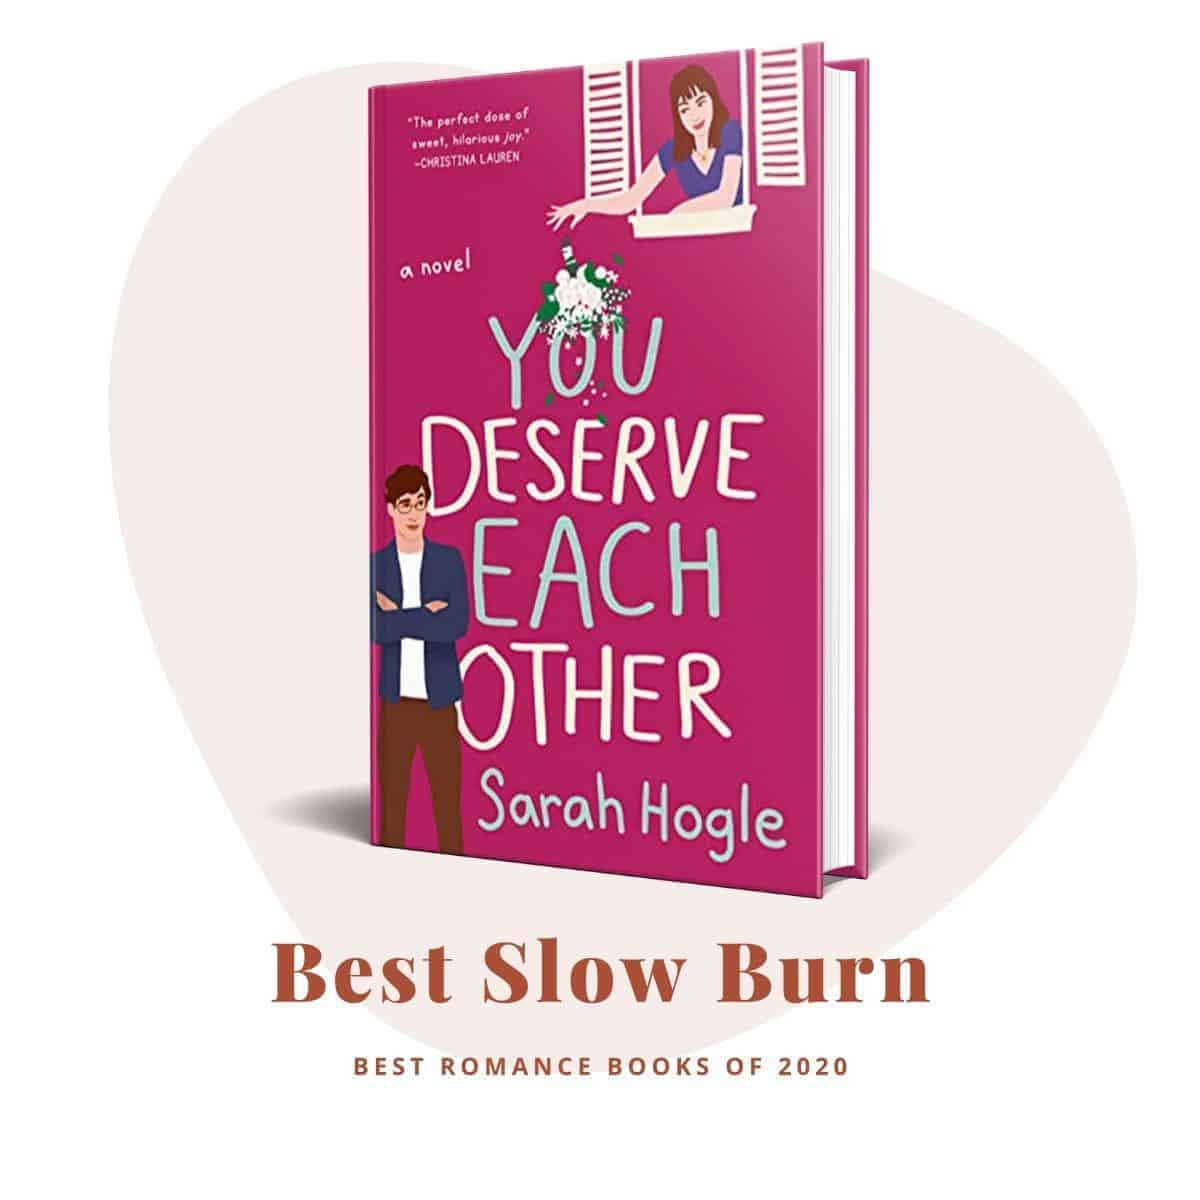 Best Romance Books 2020-You Deserve Each Other